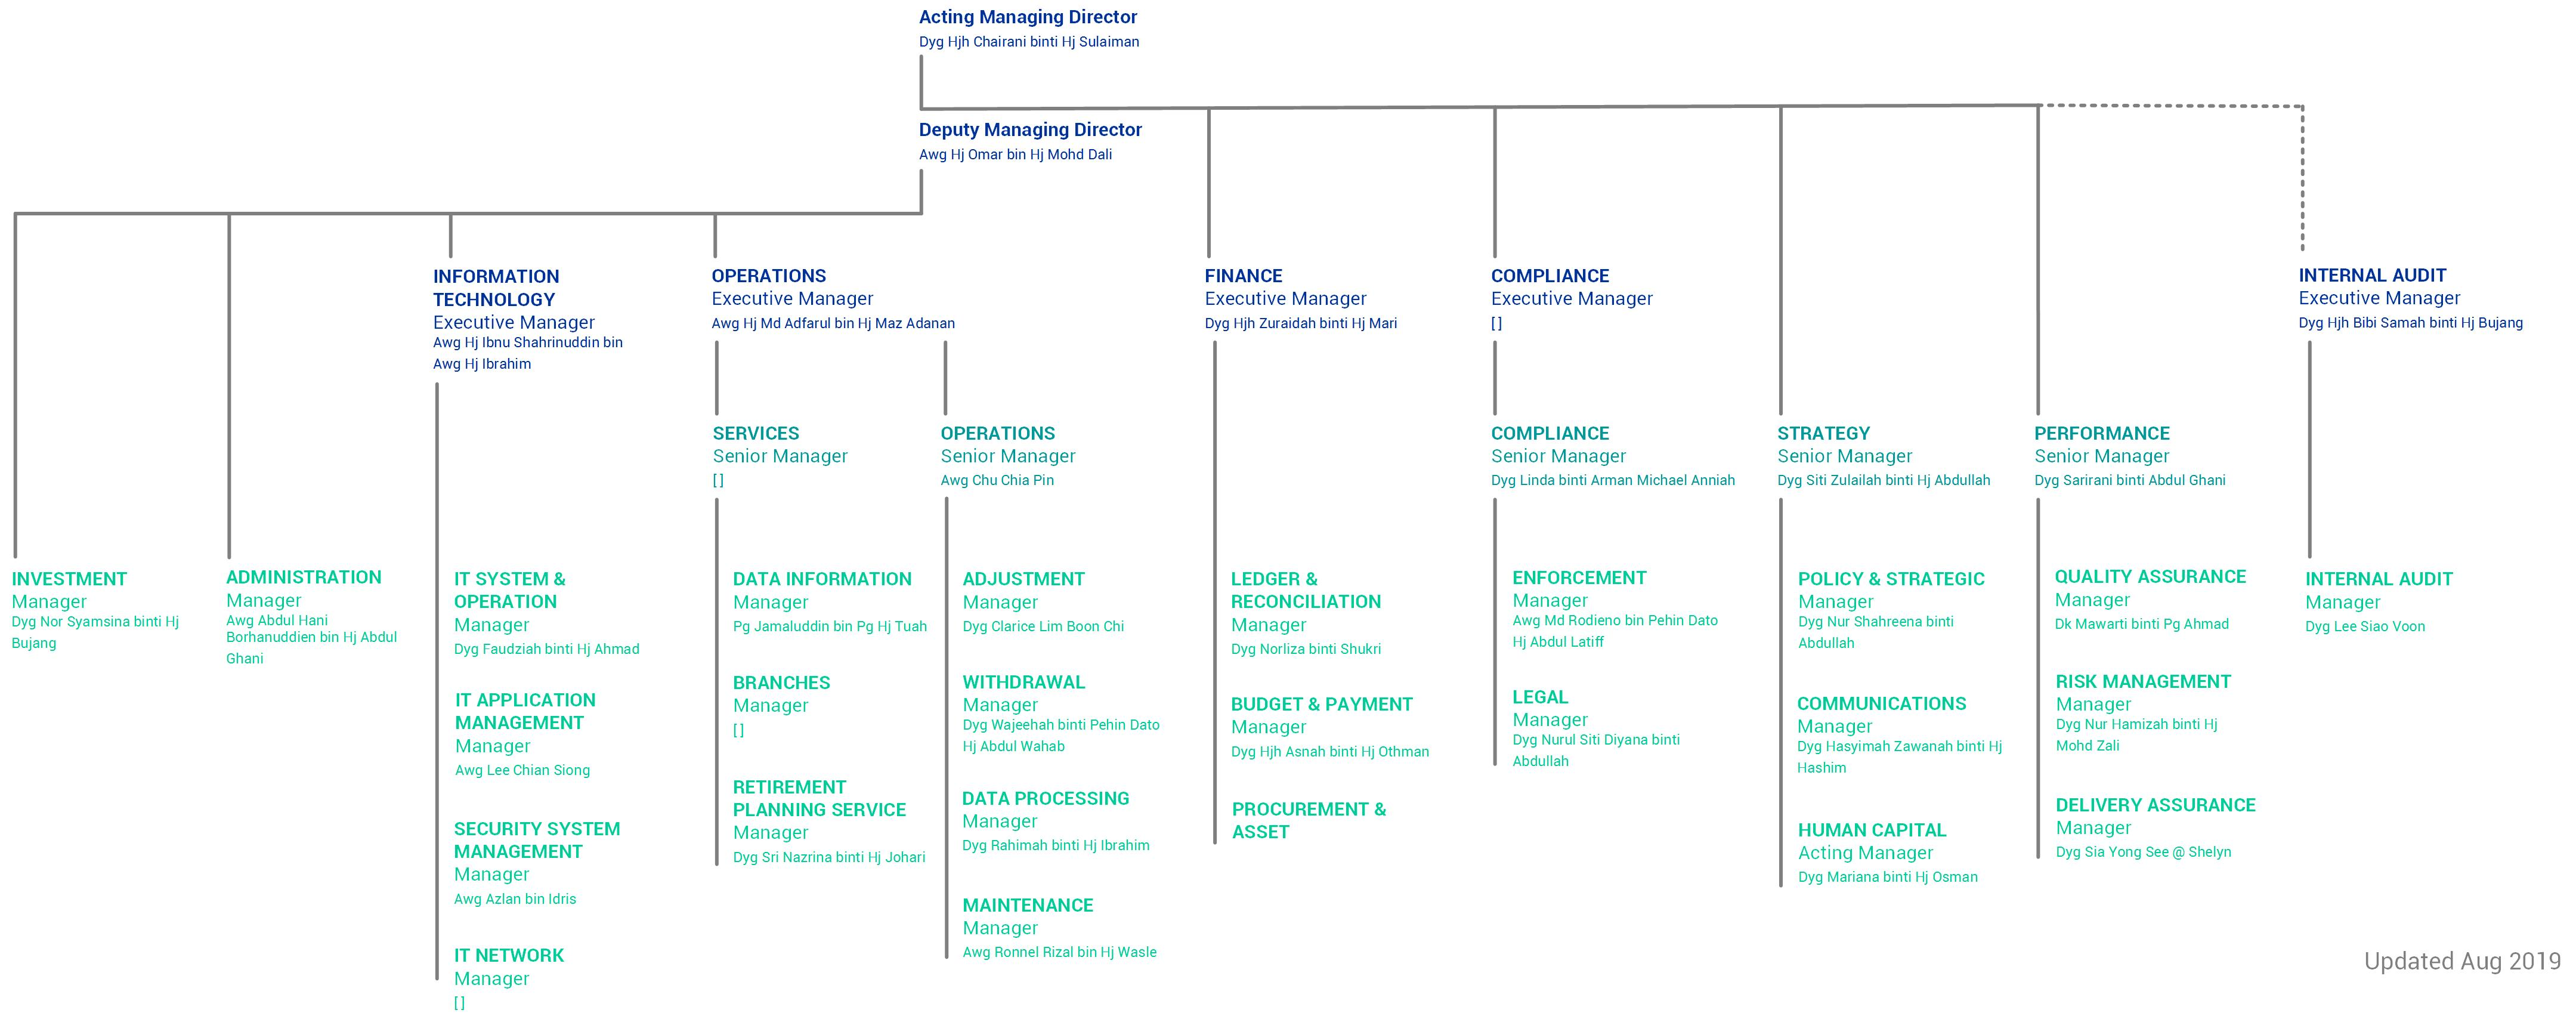 Org Chart for website Aug 2019 EN.jpg